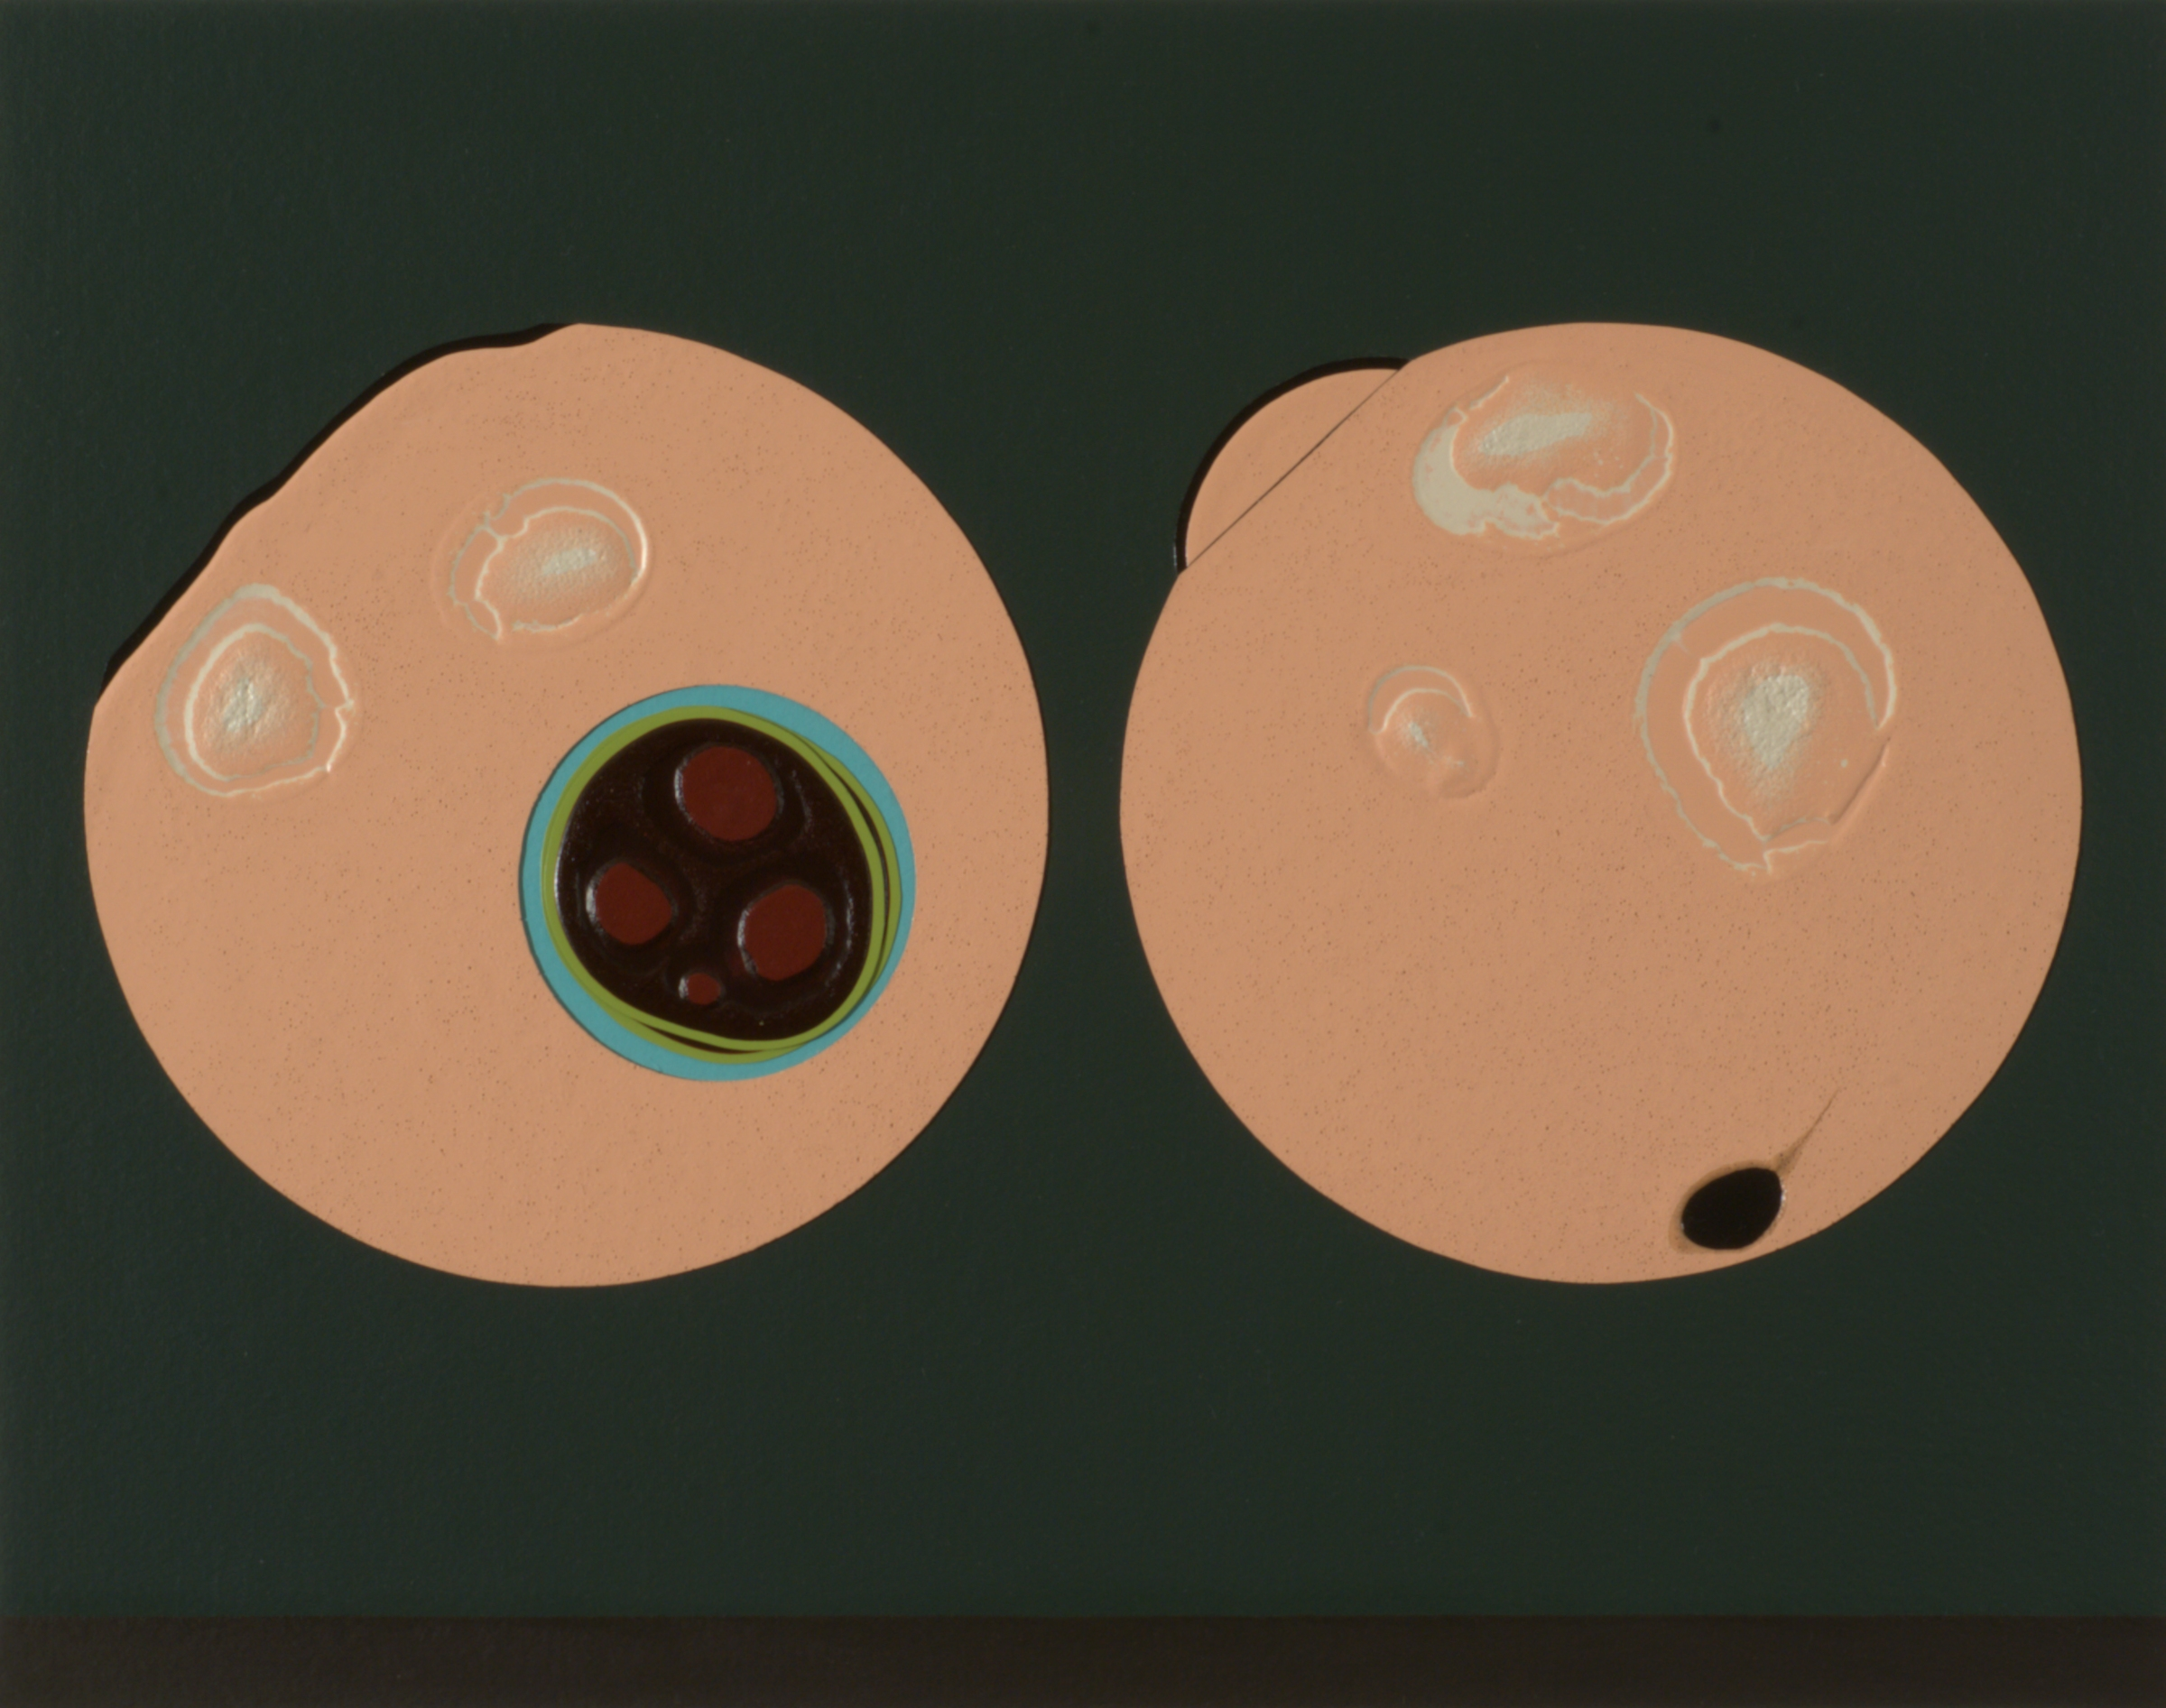 Untitled (2 cells with hot spots)